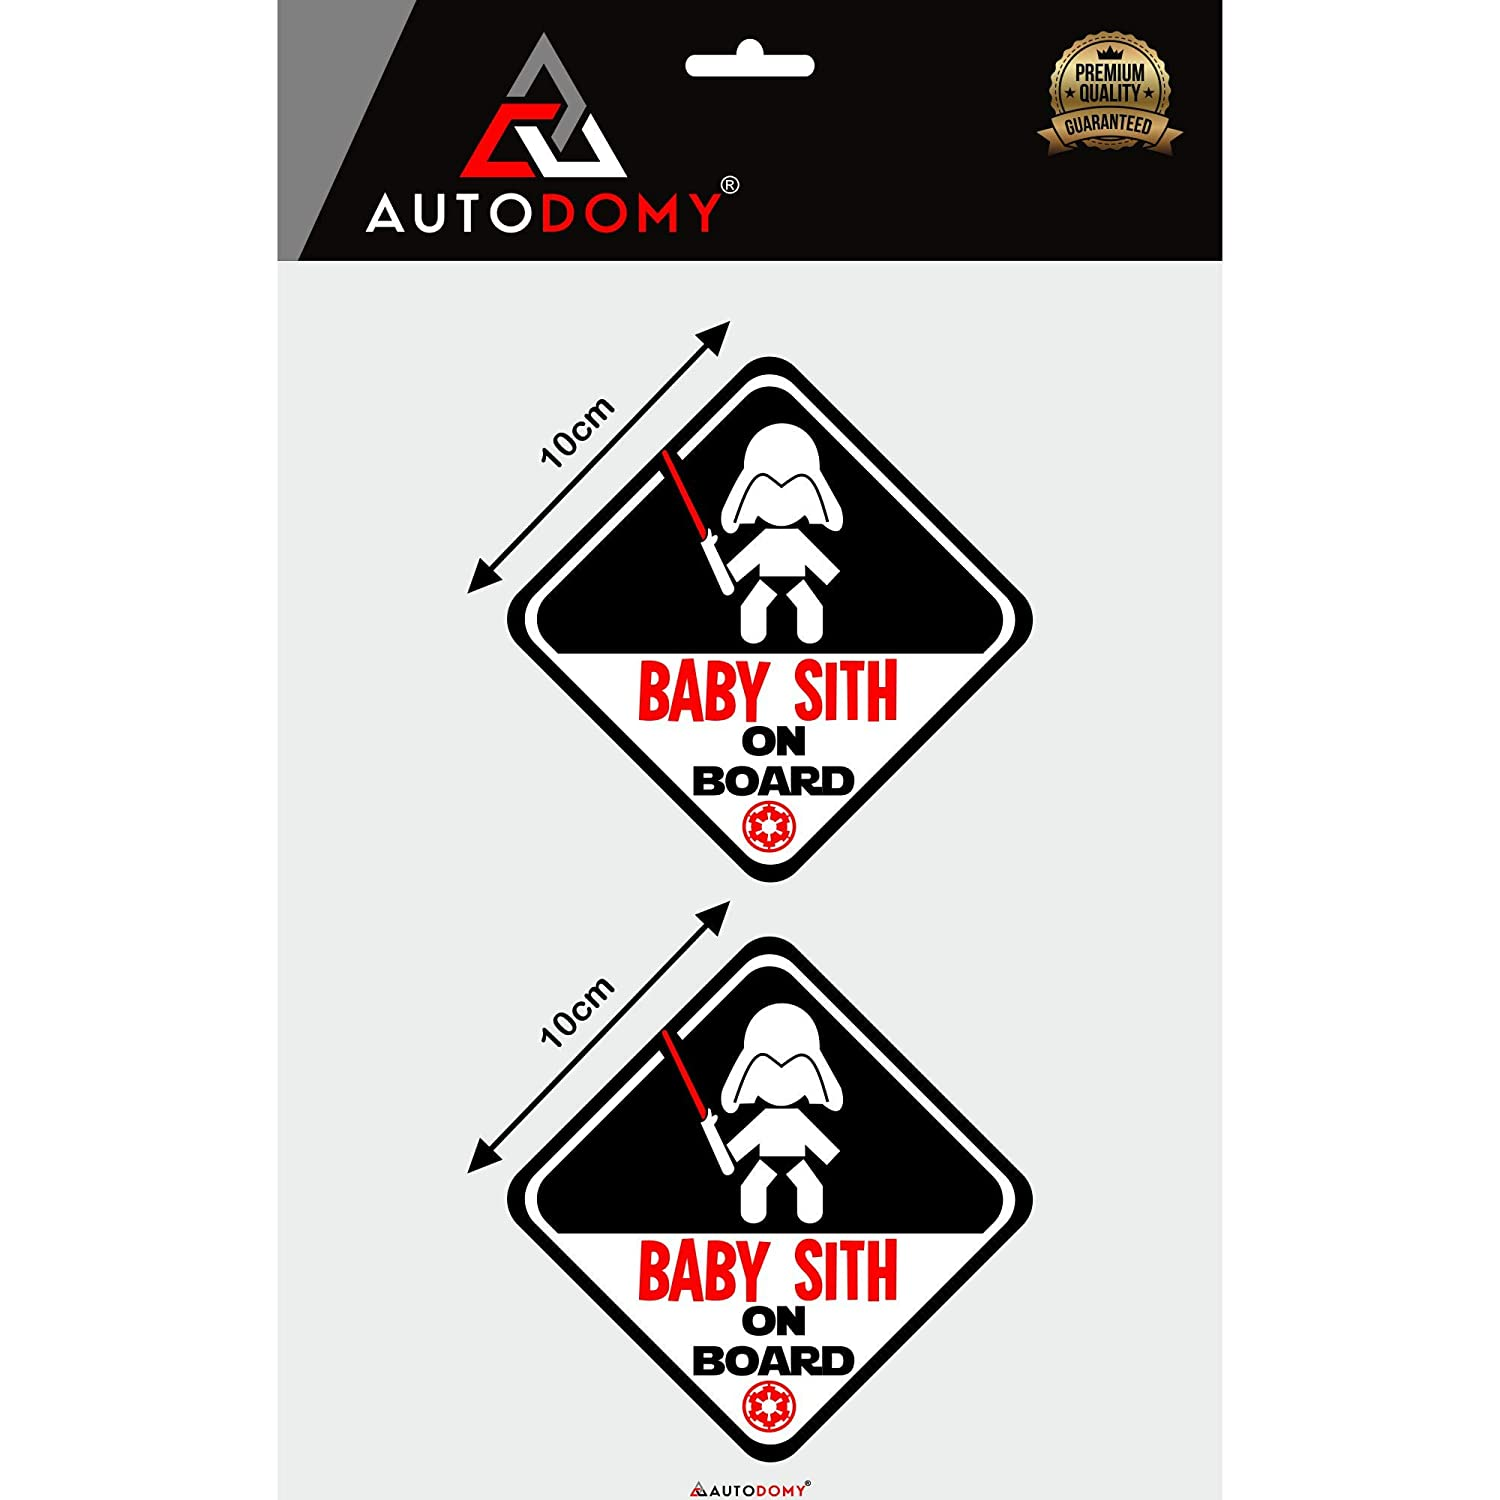 Autodomy Pegatinas Baby Sith Star Wars Baby On Board Beb/é a Bordo Baby in Car Pack 2 Unidades para Coche Uso Externo